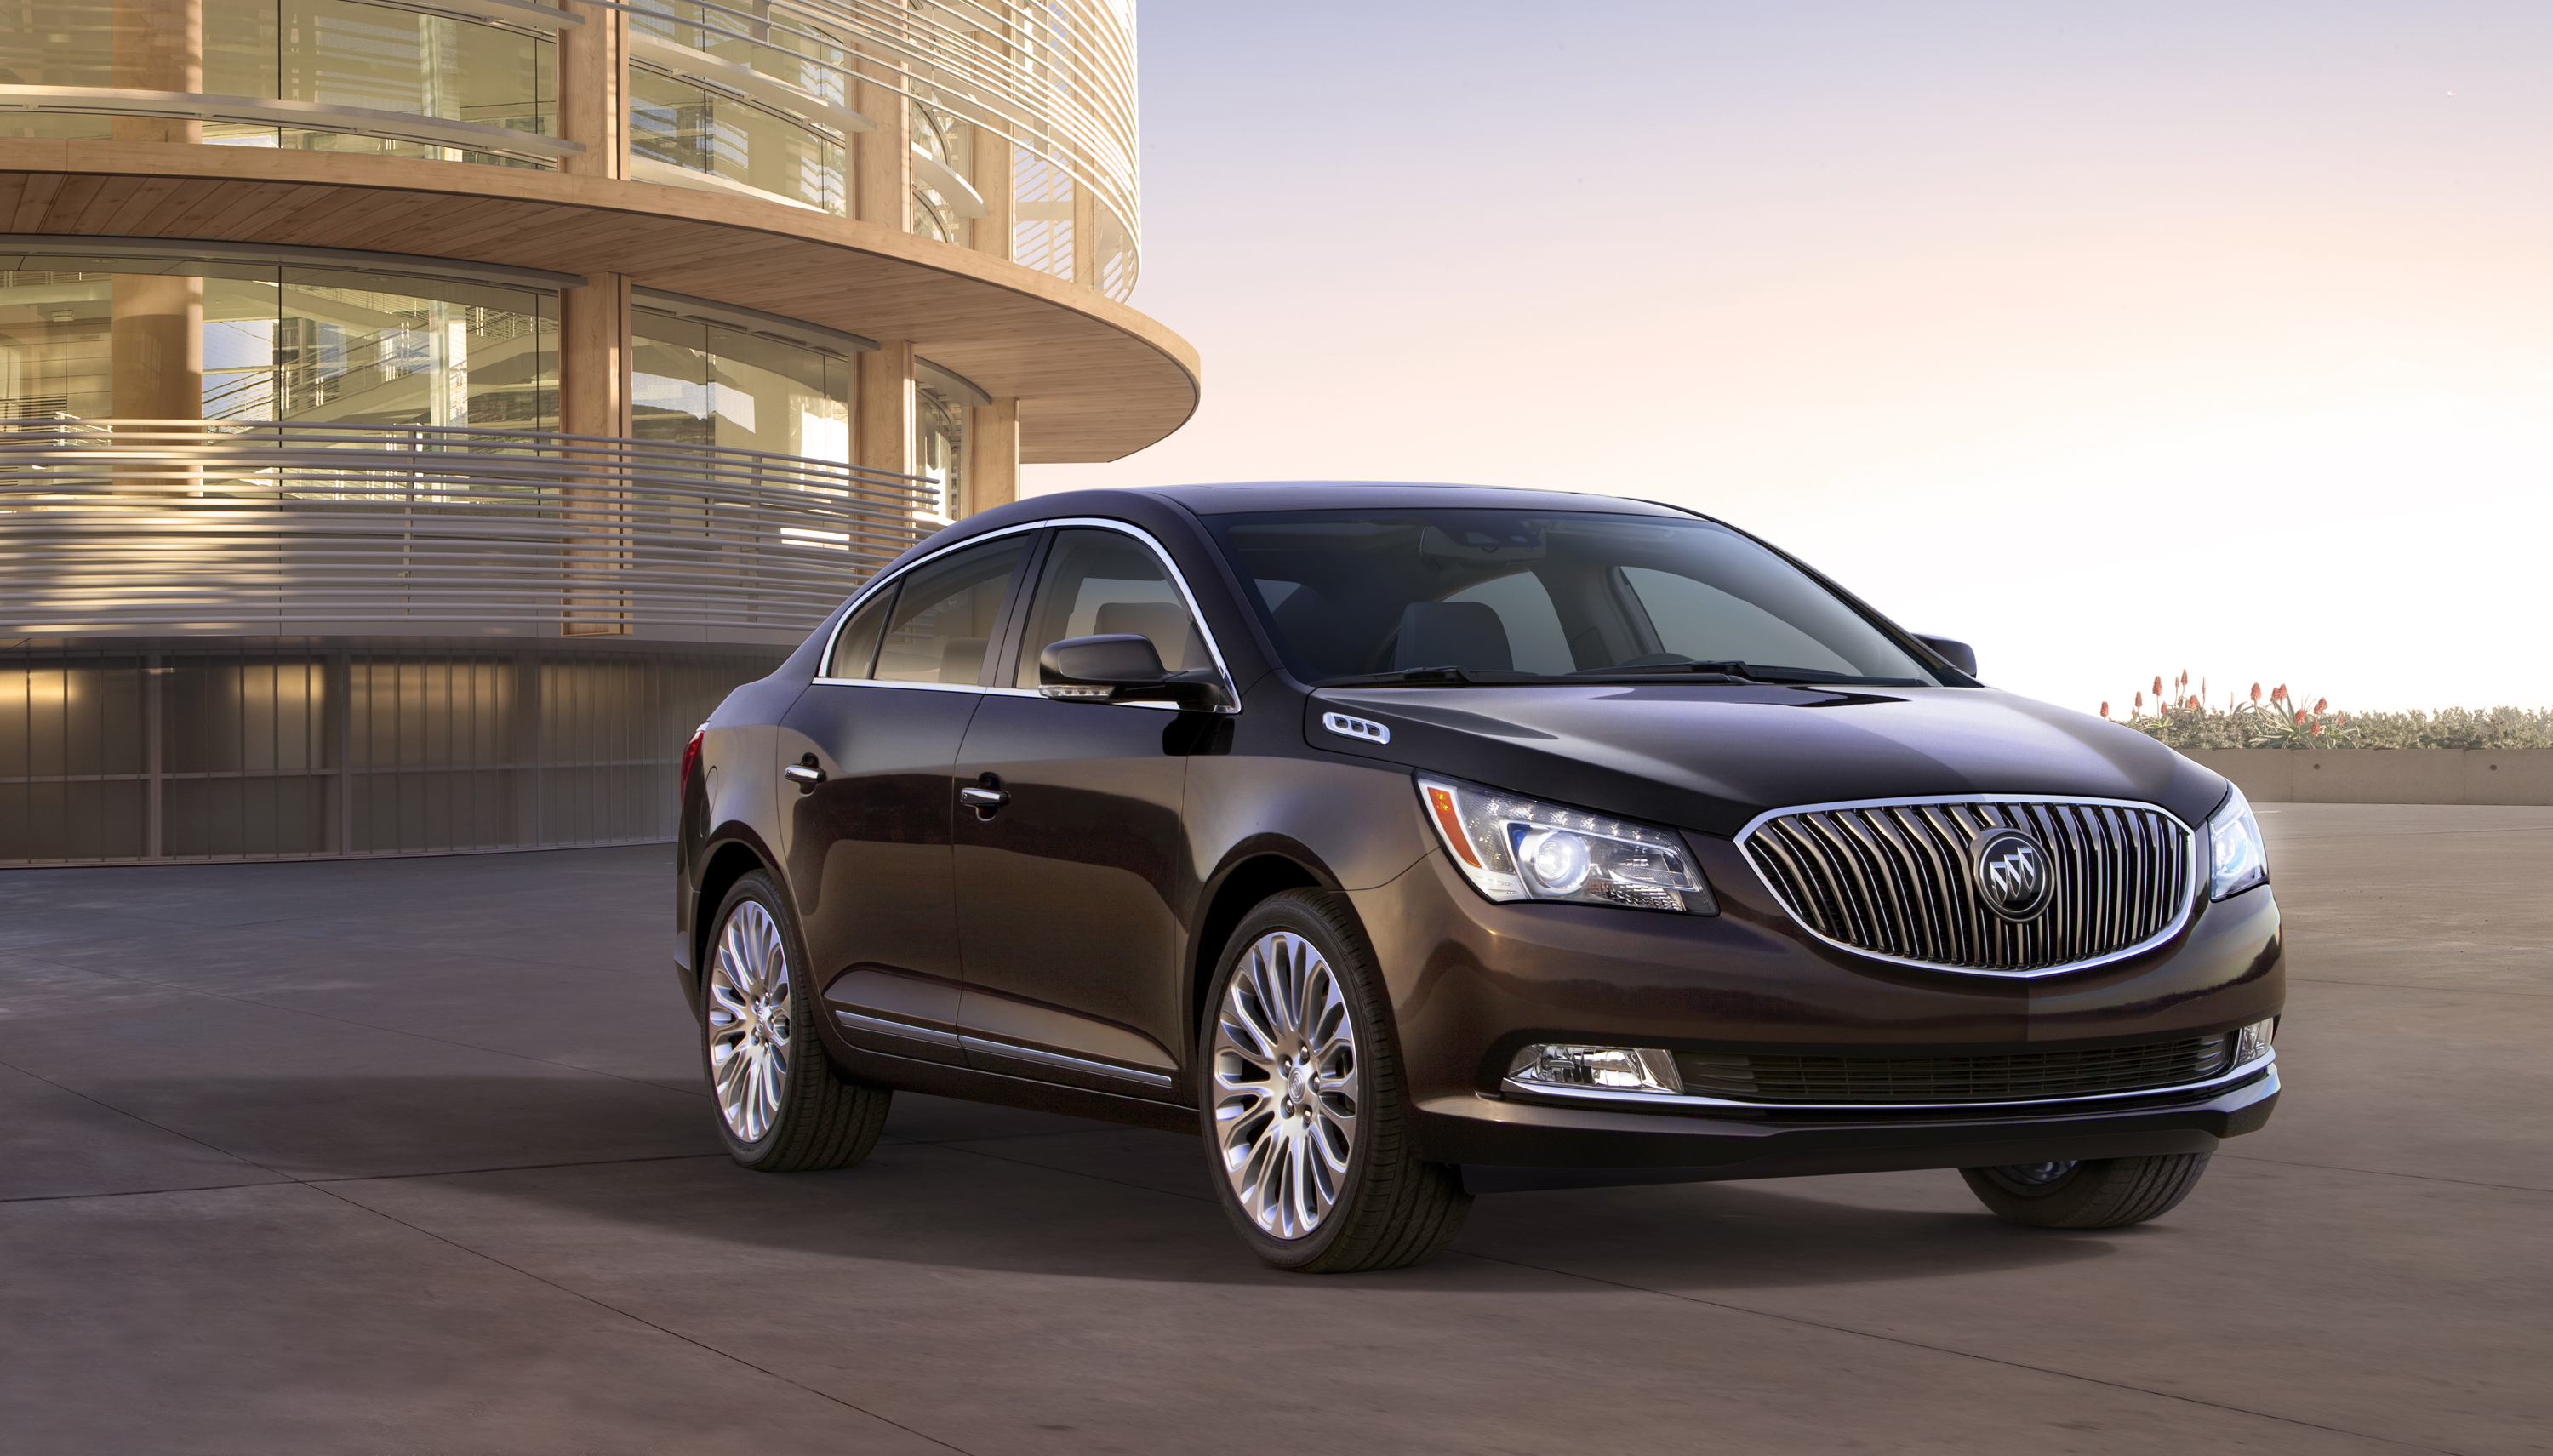 Buick LaCrosse: Safety Belt Use During Pregnancy